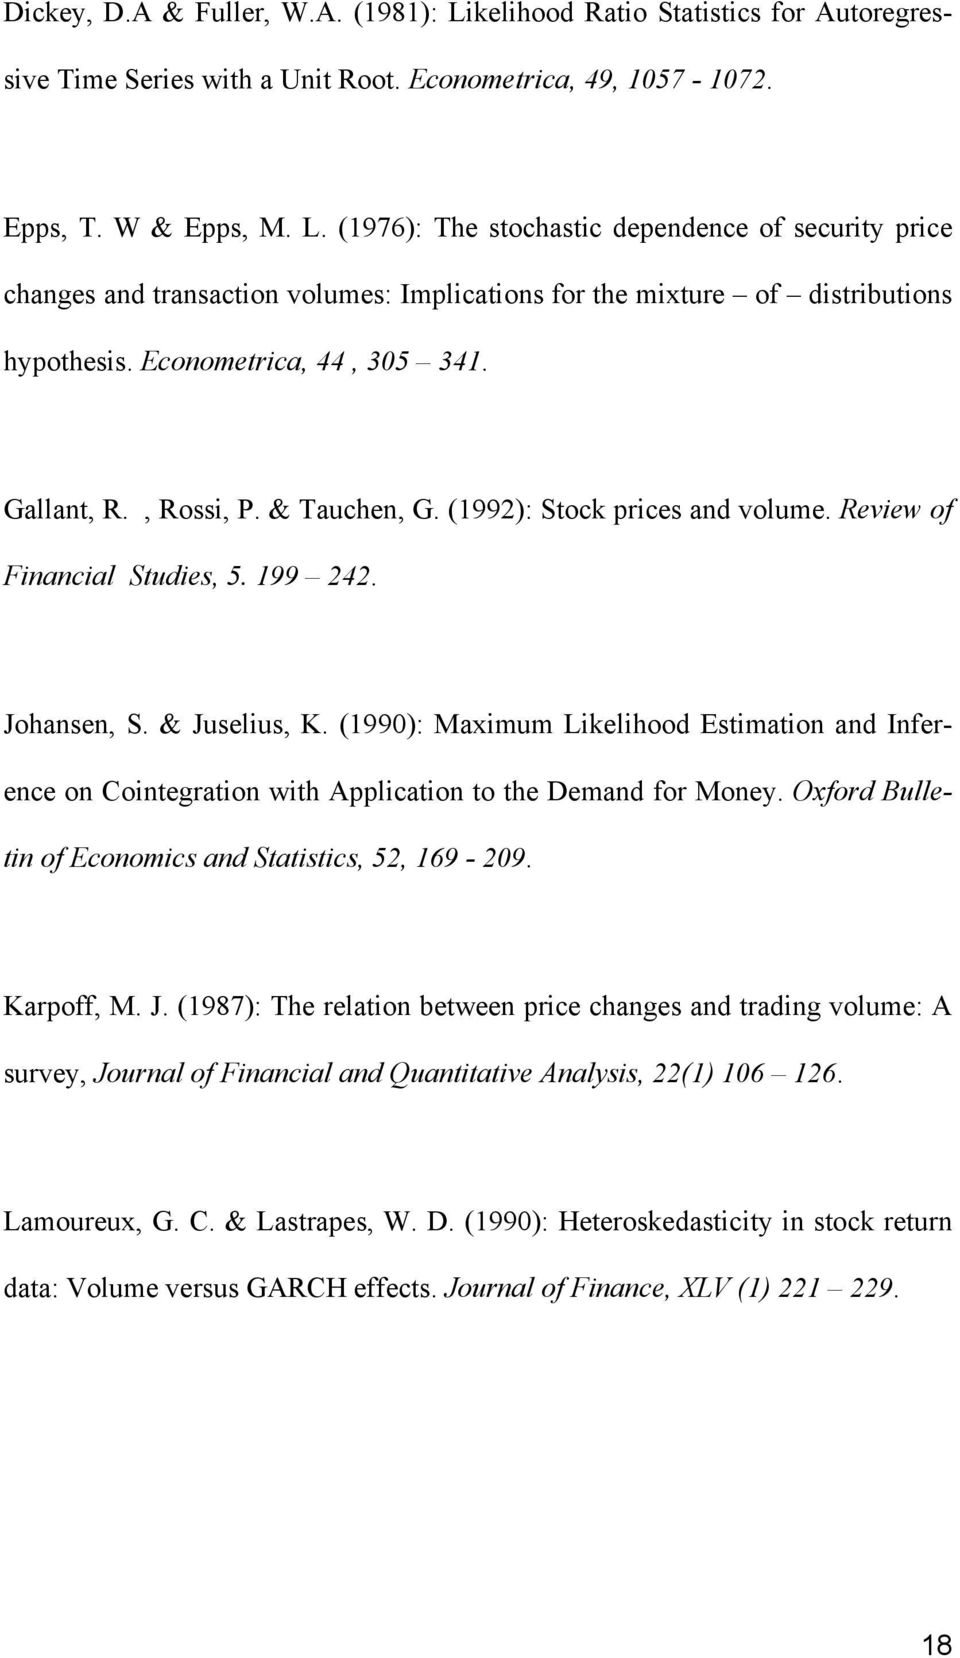 (1990): Maximum Likelihood Estimation and Inference on Cointegration with Application to the Demand for Money. Oxford Bulletin of Economics and Statistics, 52, 169-209. Karpoff, M. J.